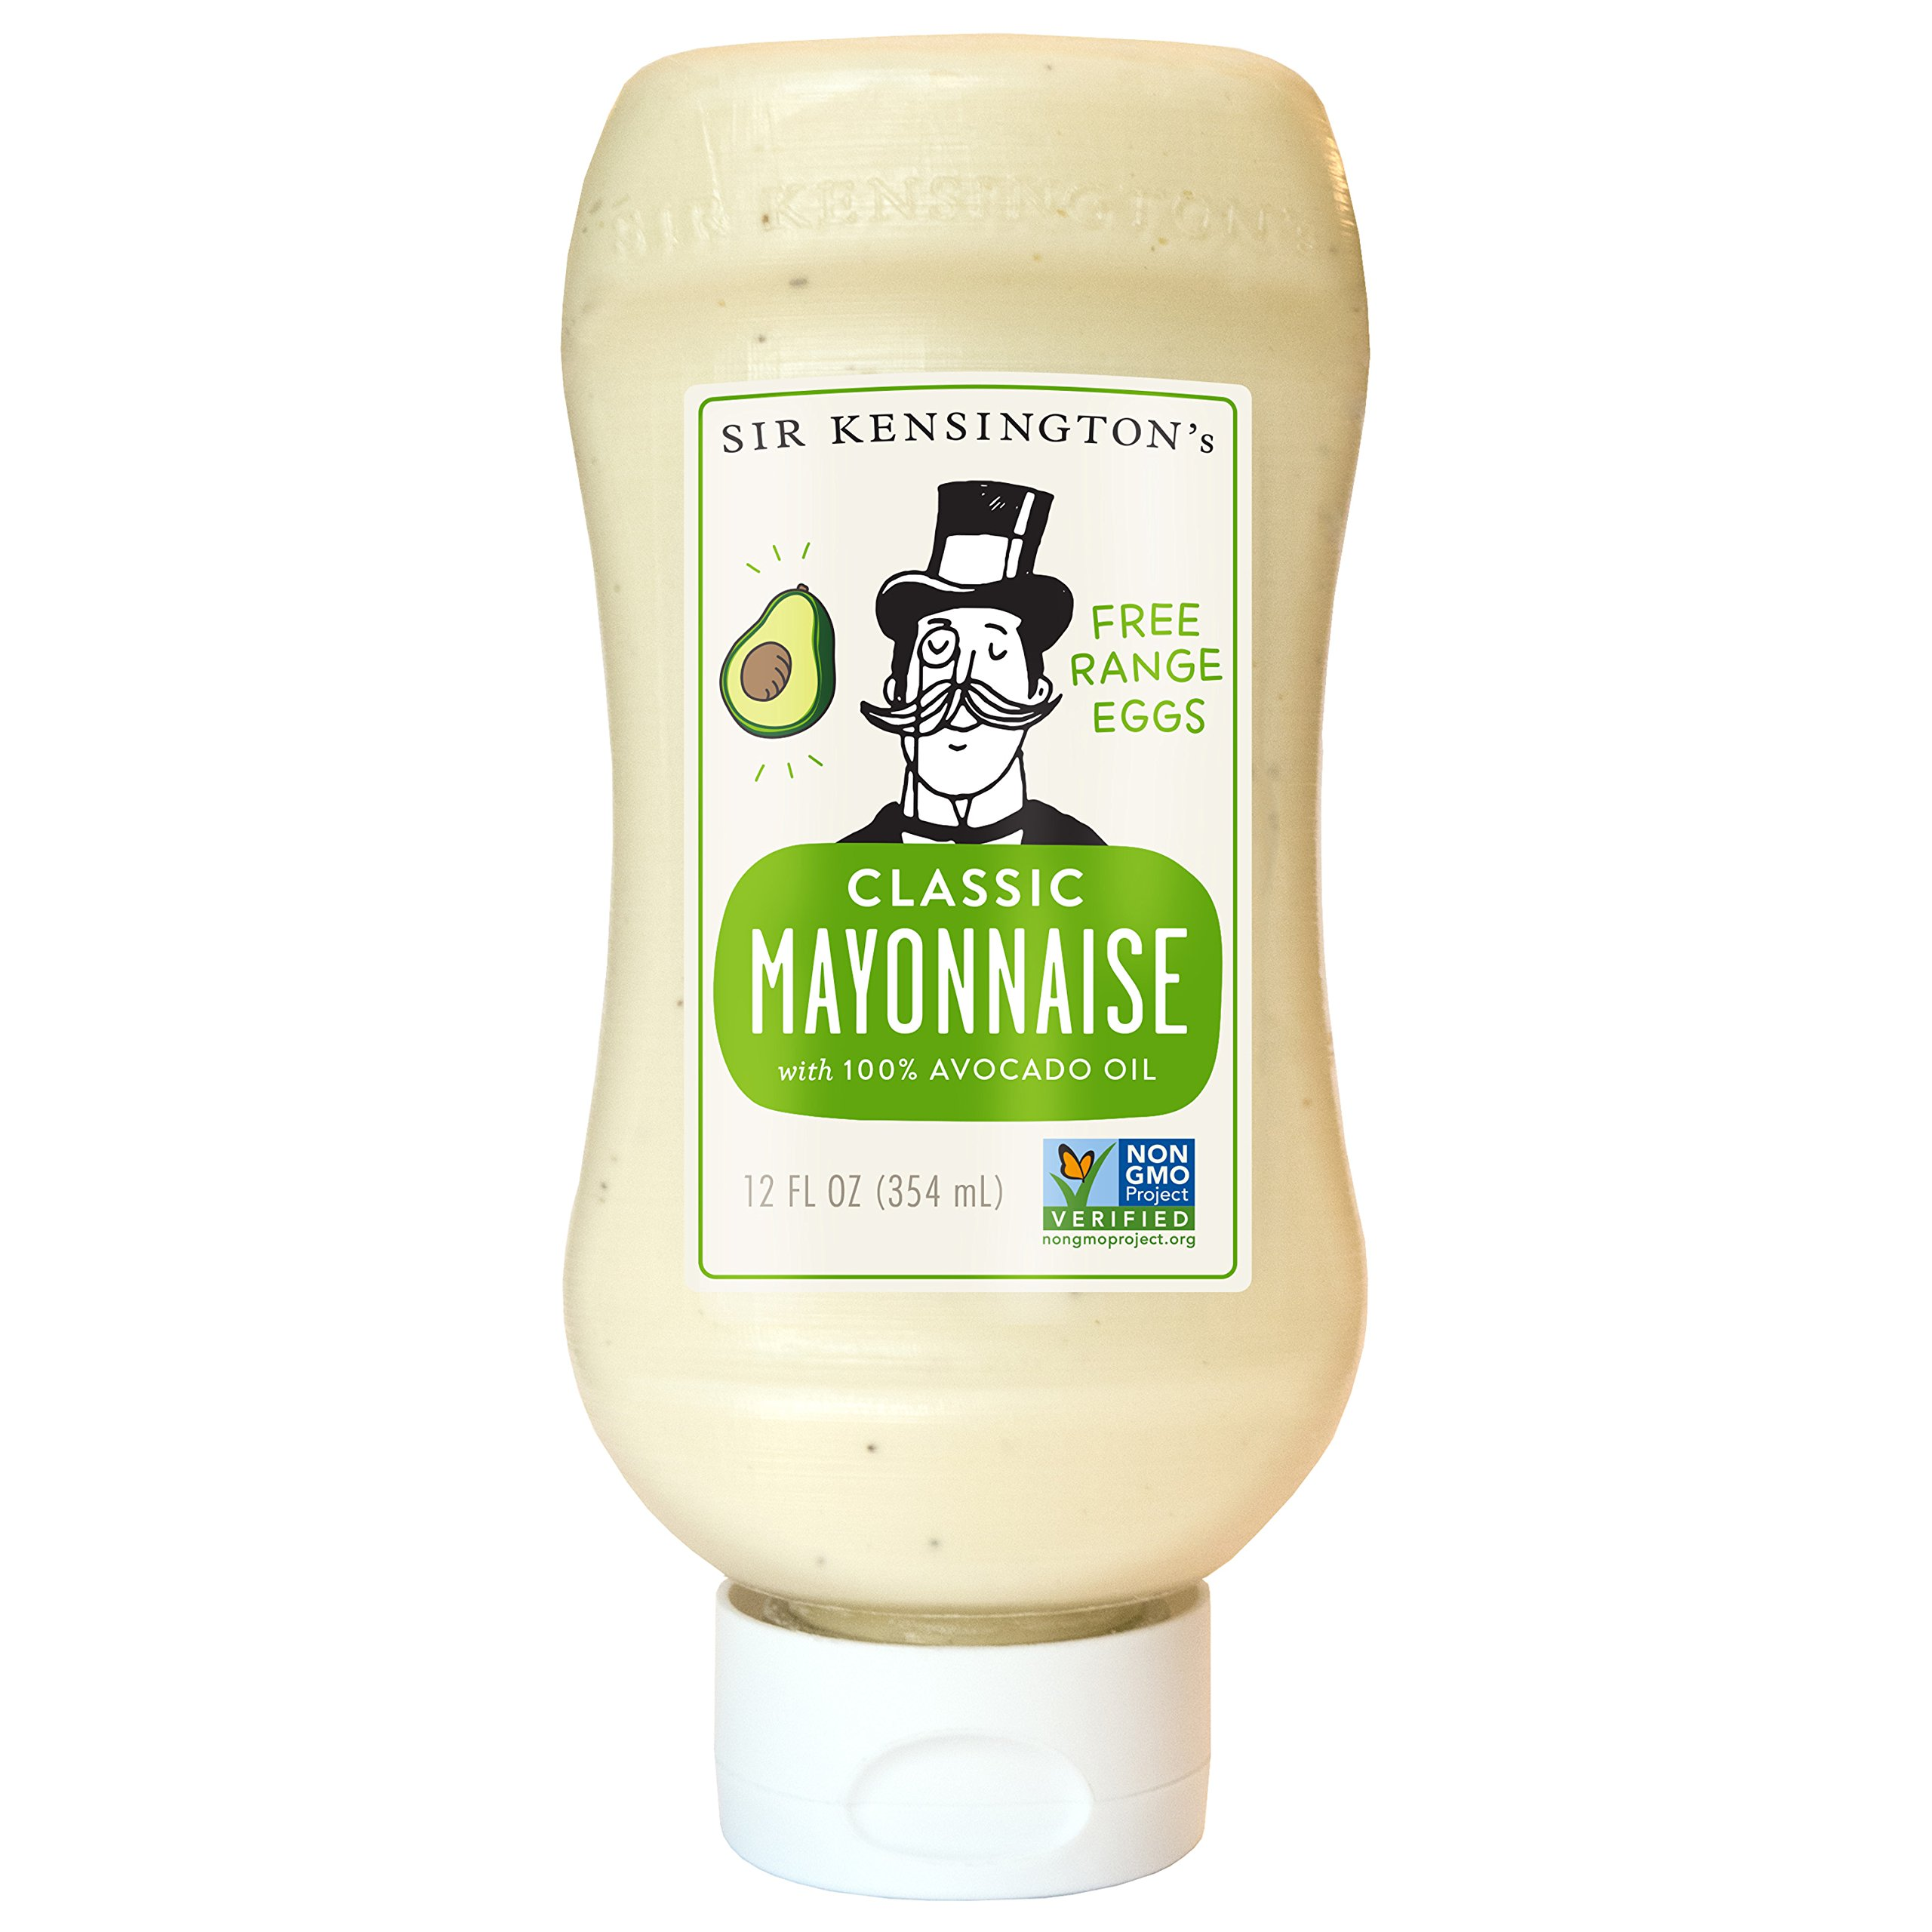 Sir Kensington's Mayonnaise Avocado Oil, 12 oz by Sir Kensington's